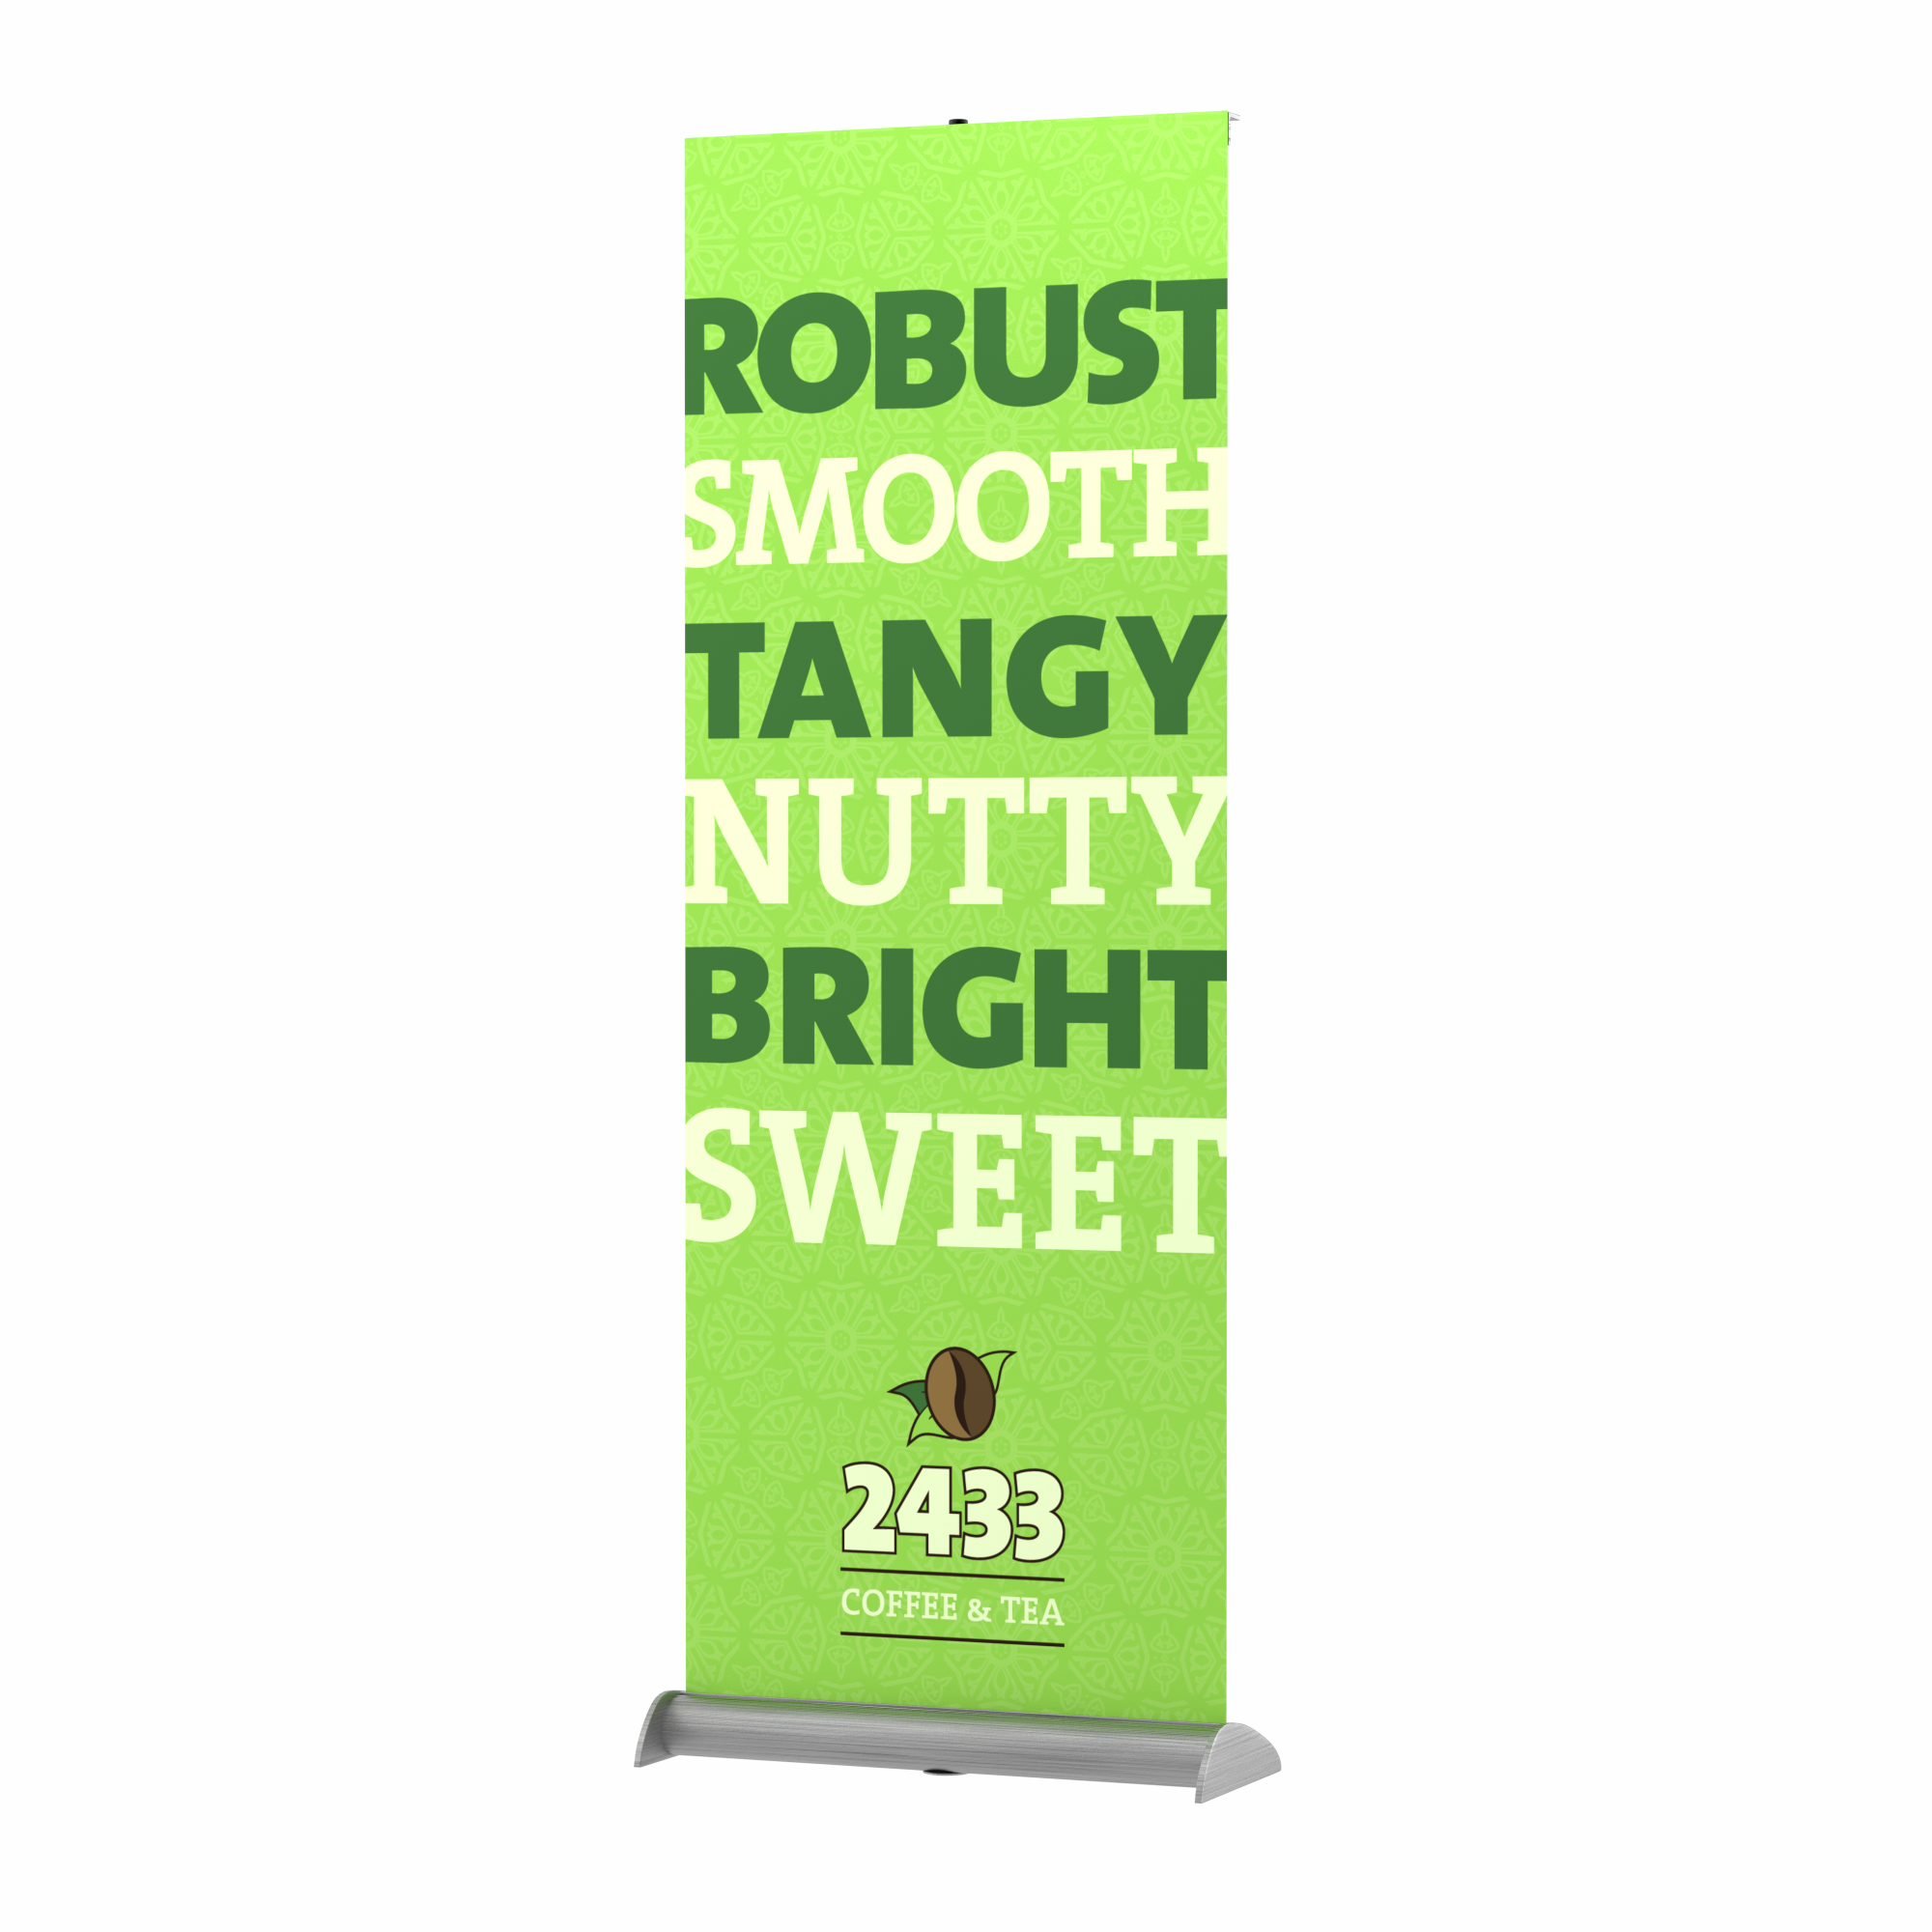 Display Graphics & Hardware - We offer a full line of quality display hardware, made in the US, that compliments our line of graphics.